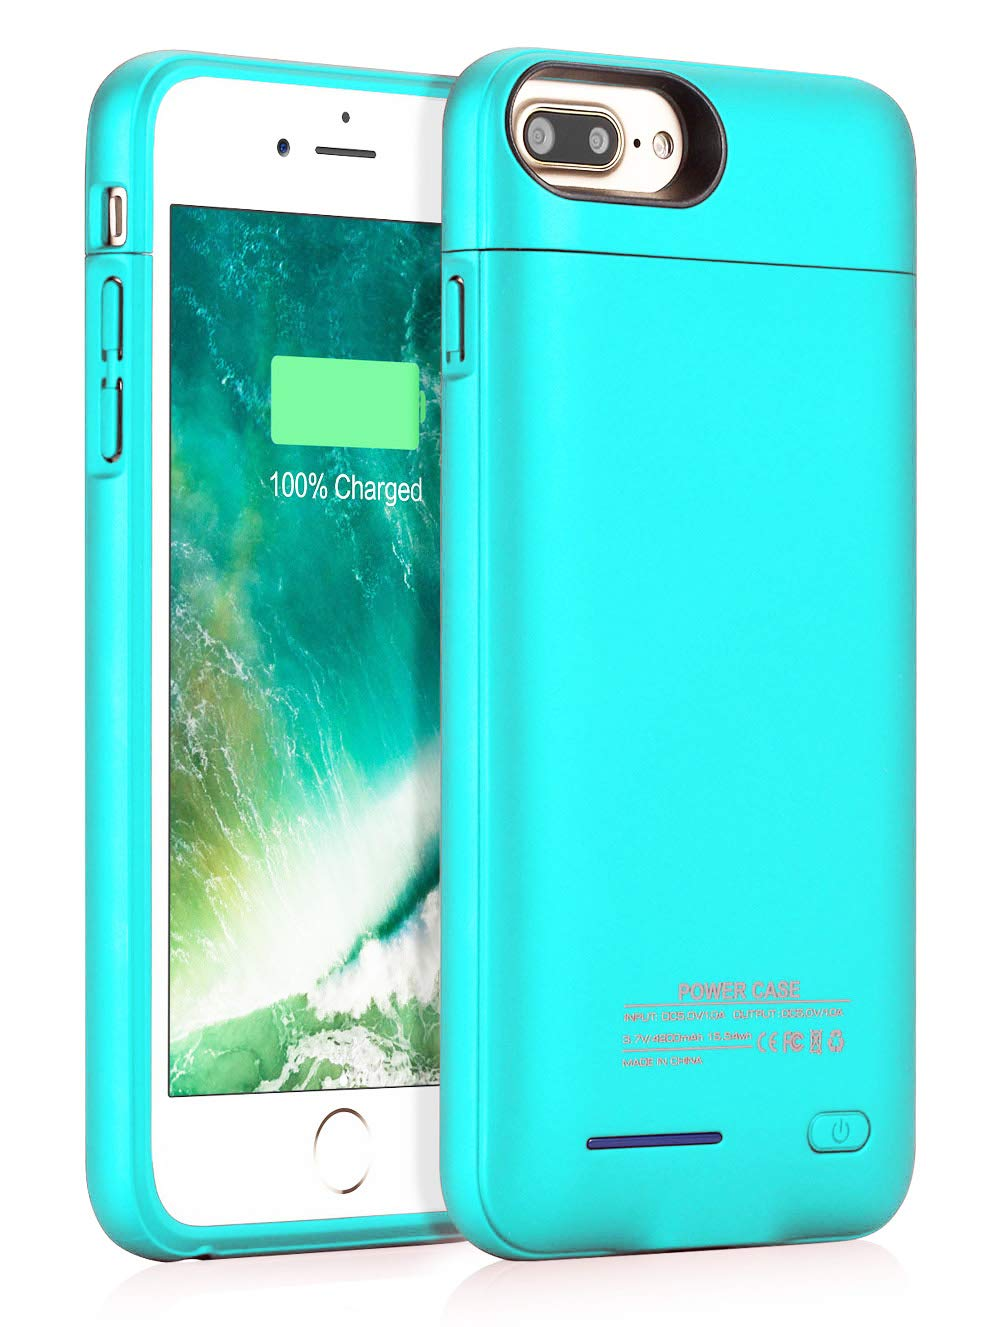 Battery Case for iPhone 8 Plus/7 Plus, JUBOTY 4200mAh Magnetic Slim Charger Case Extend 153% Battery Life Rechargeable Portable Backup Charging Case Compatible with iPhone 8 Plus/7 Plus(Blue)